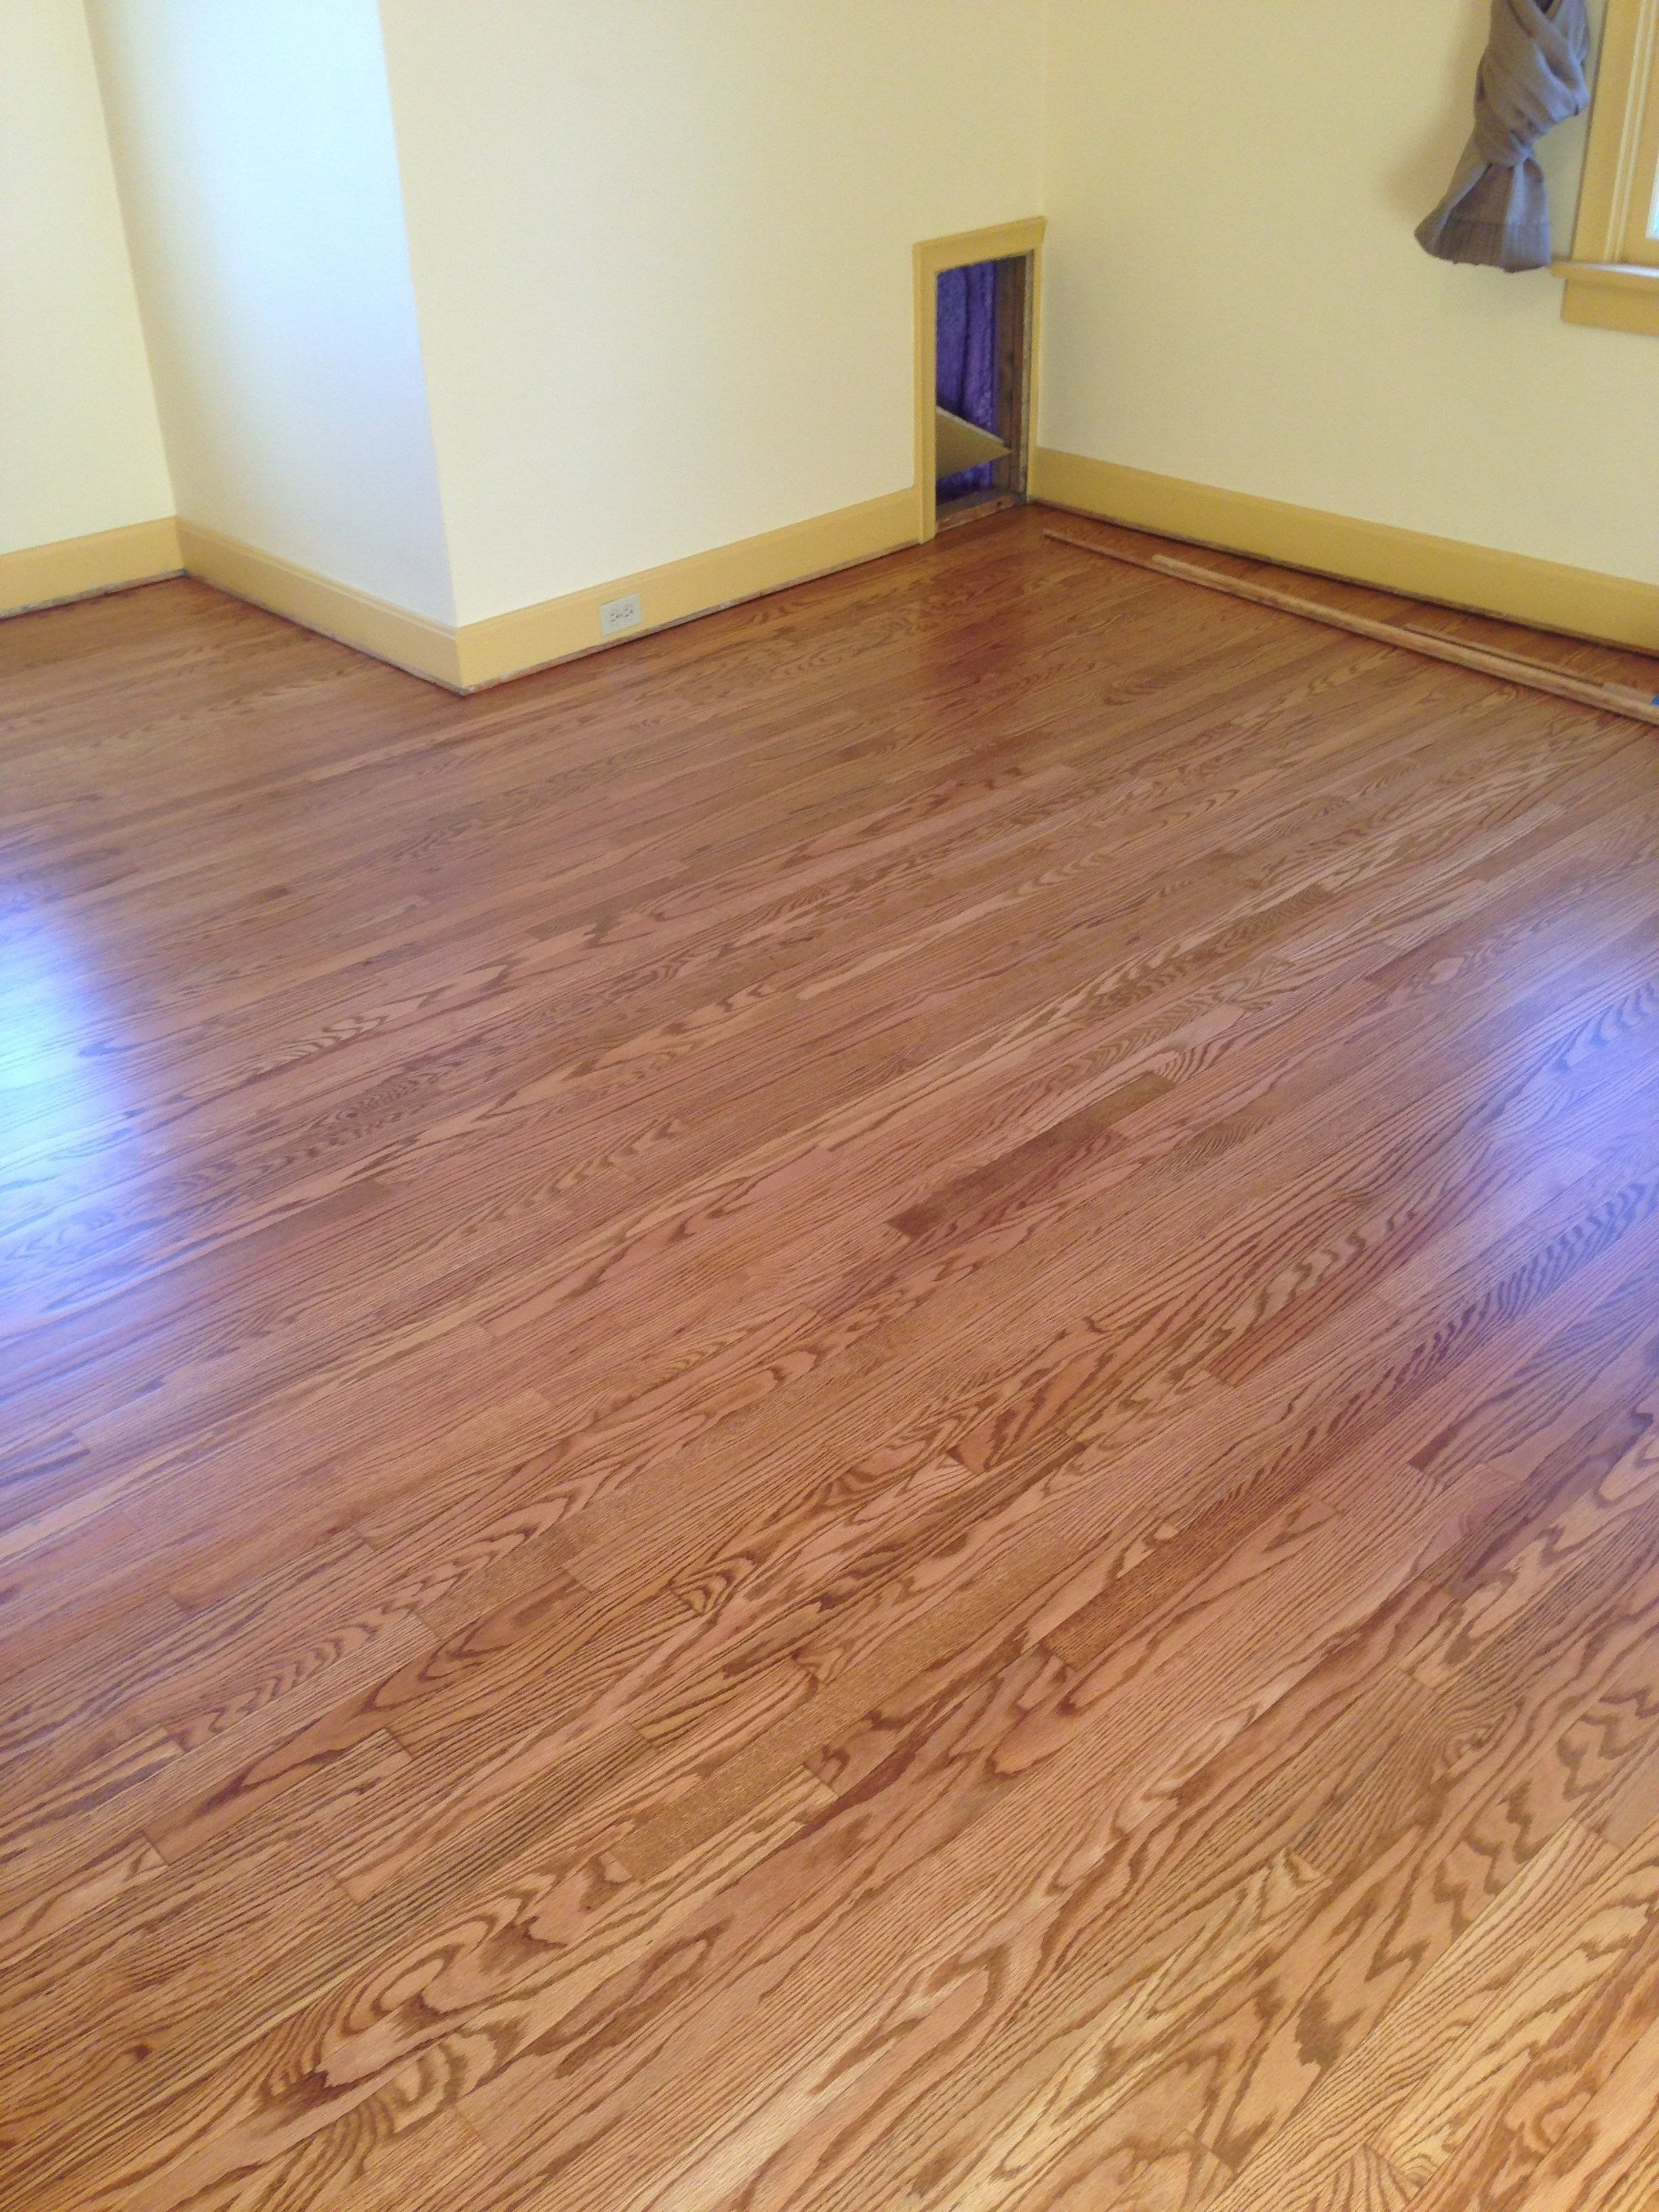 how much does hardwood floor refinishing cost sq ft of fresh hardwood floor cost per square foot cjsrods with this is how much hardwood flooring to order monterey hardwood collection rooms and spaces cost per square foot to refinish hardwood floors gray tones mixed